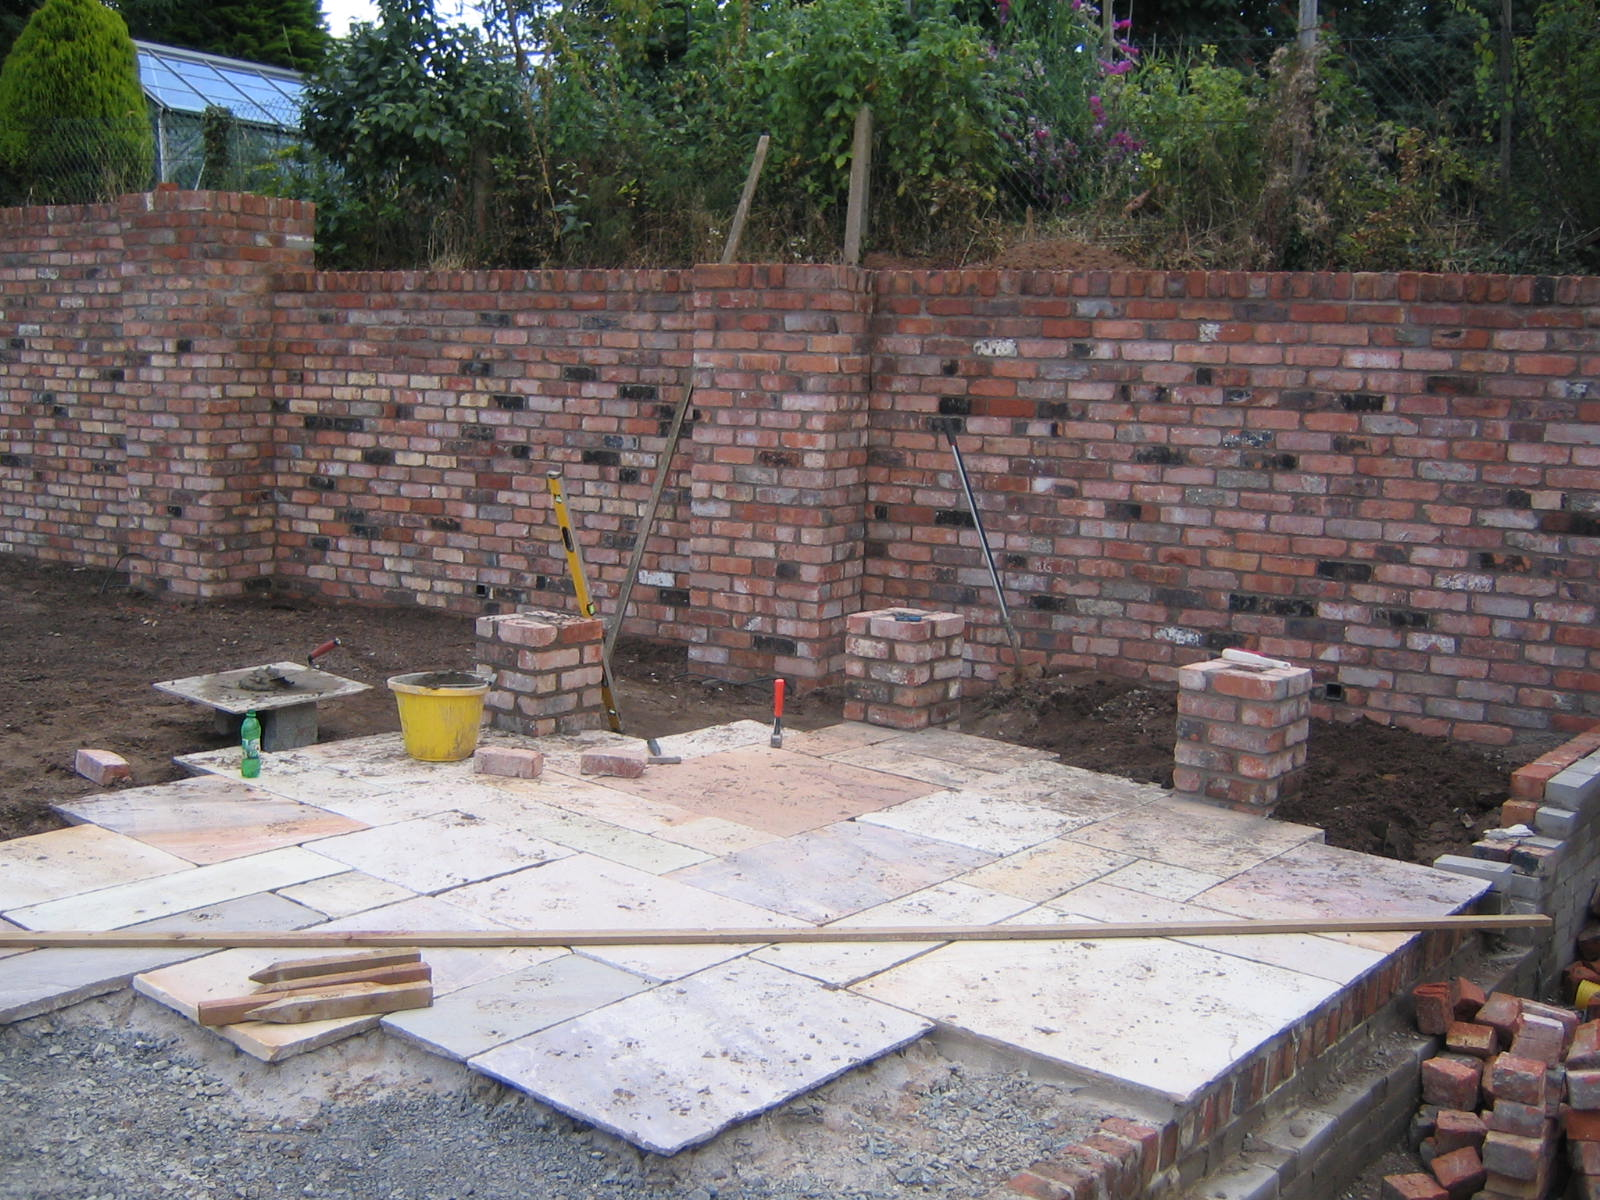 sandstone paving and reclaimed bricks in garden belfast